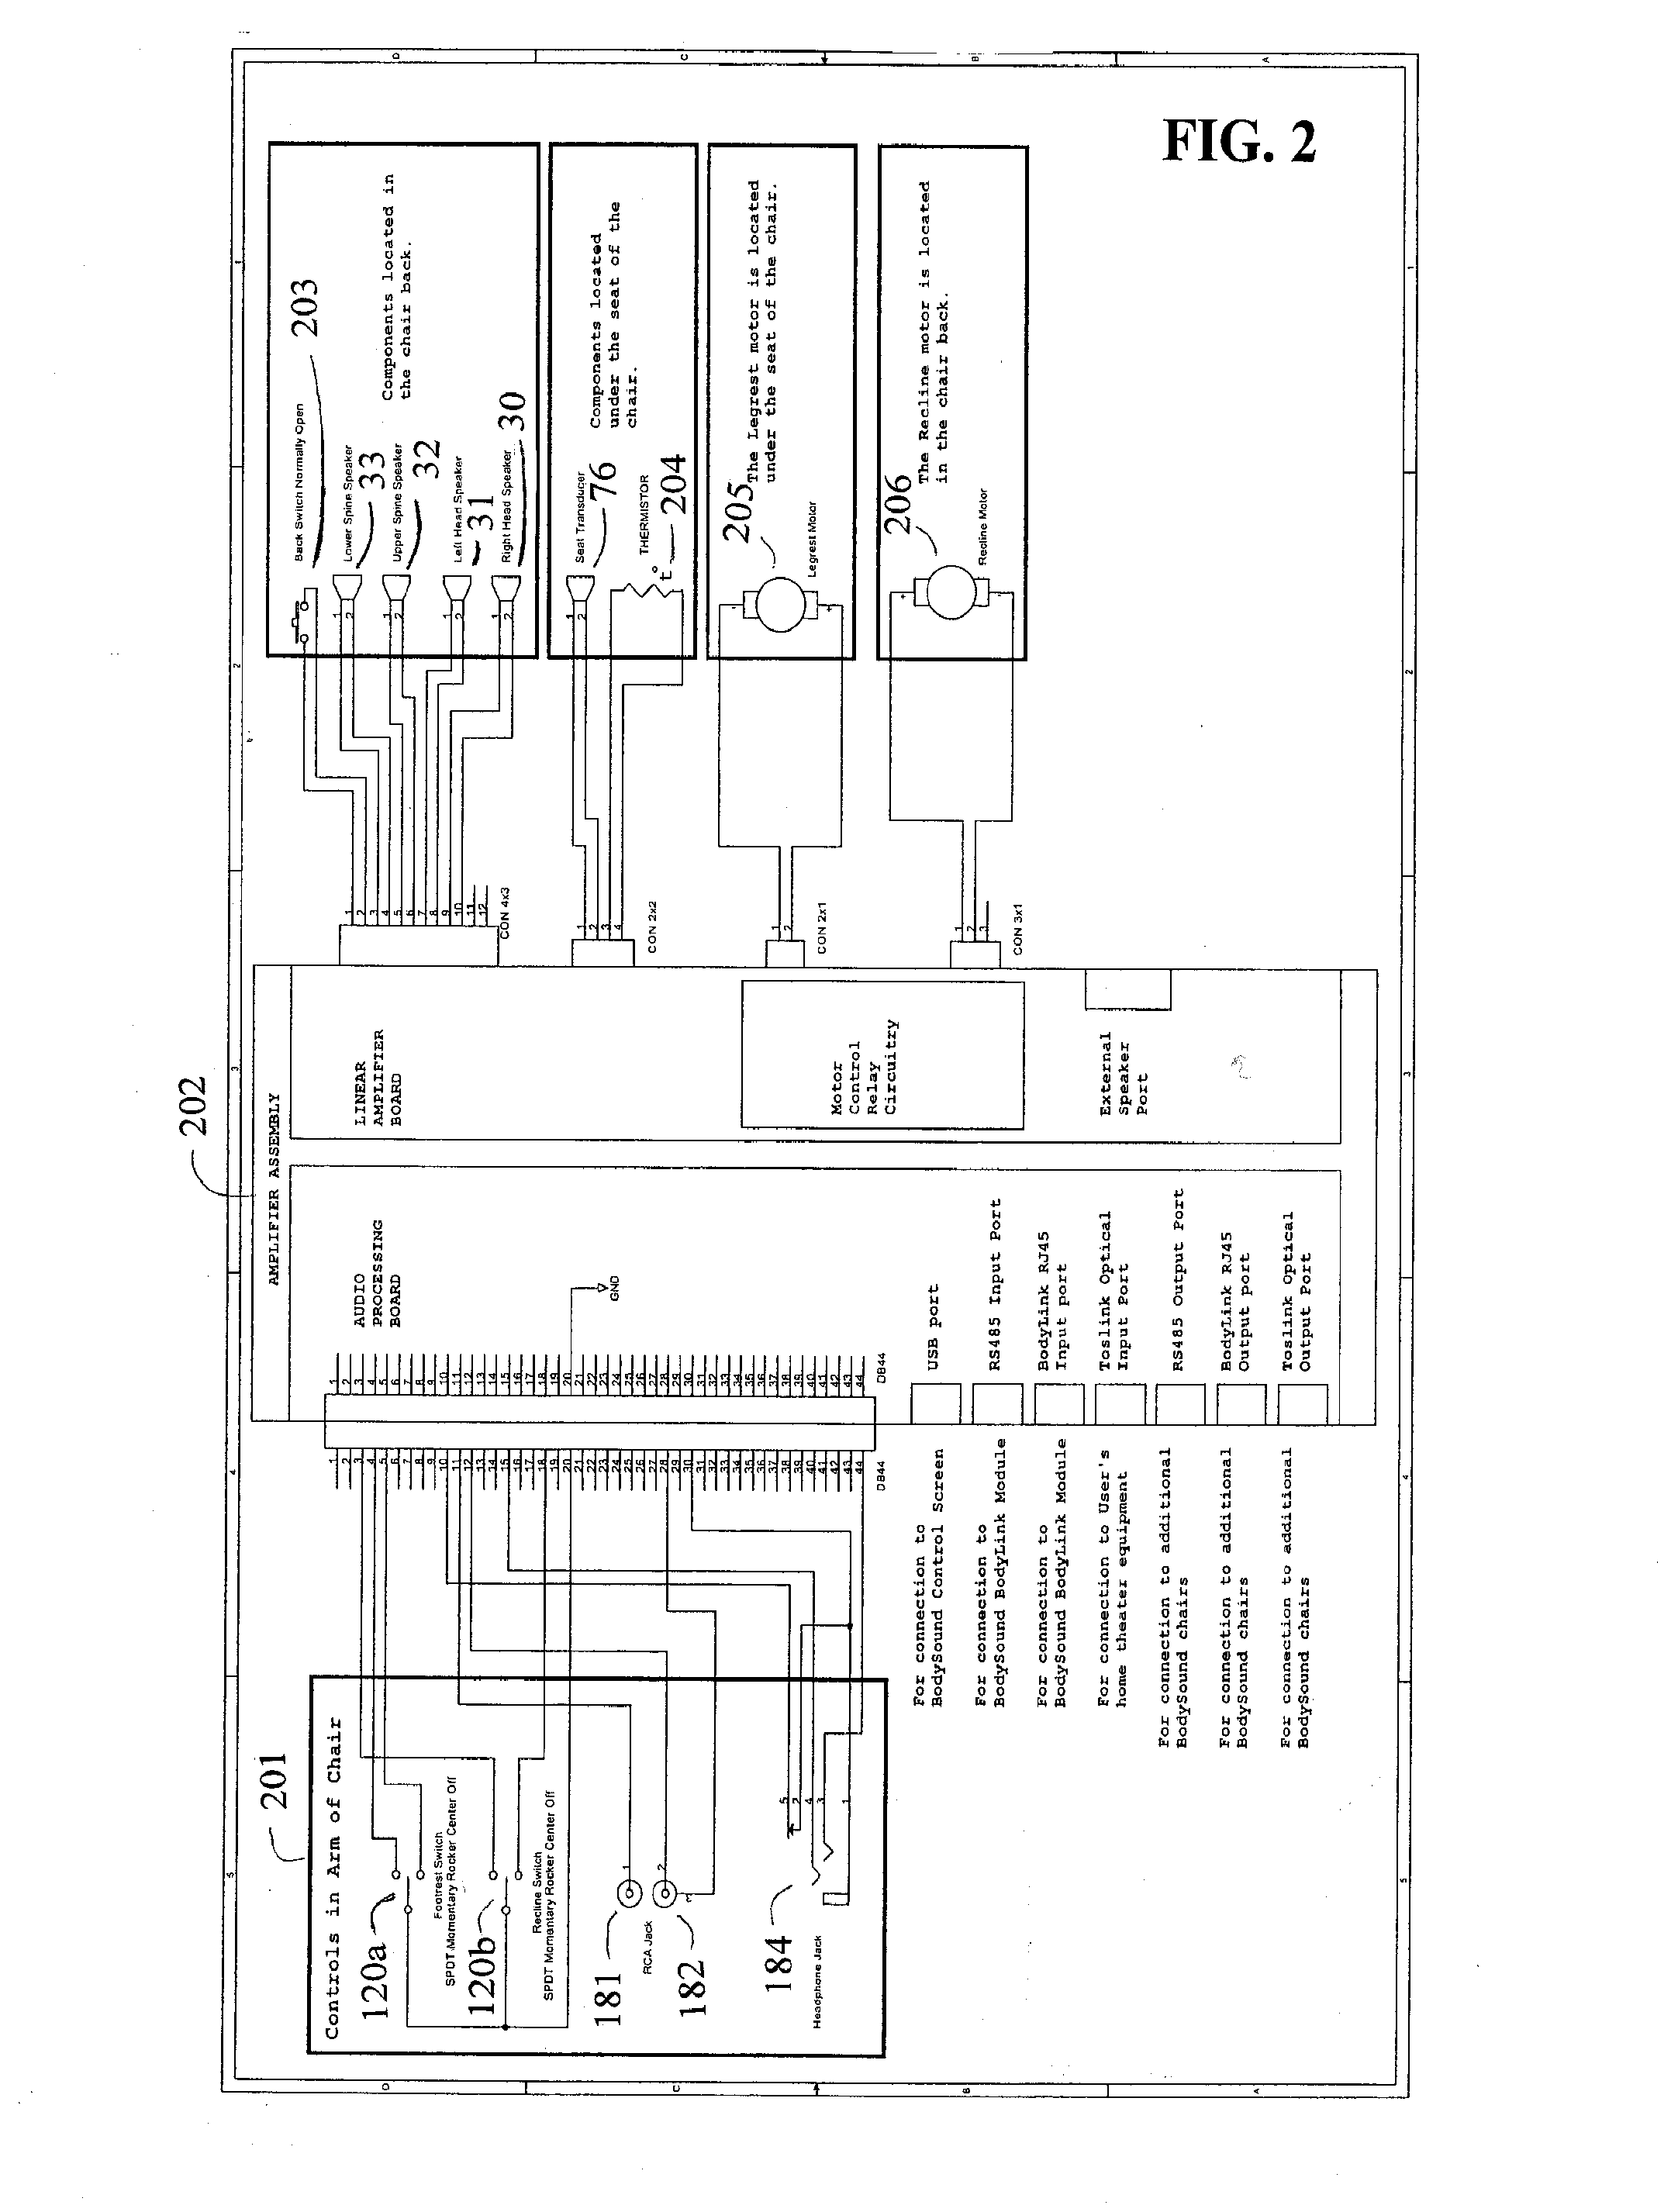 Lexus Lx470 Radio Wiring Diagram Daily Update 2001 Gs430 Es330 Fuse Box Auto Harness For Gs